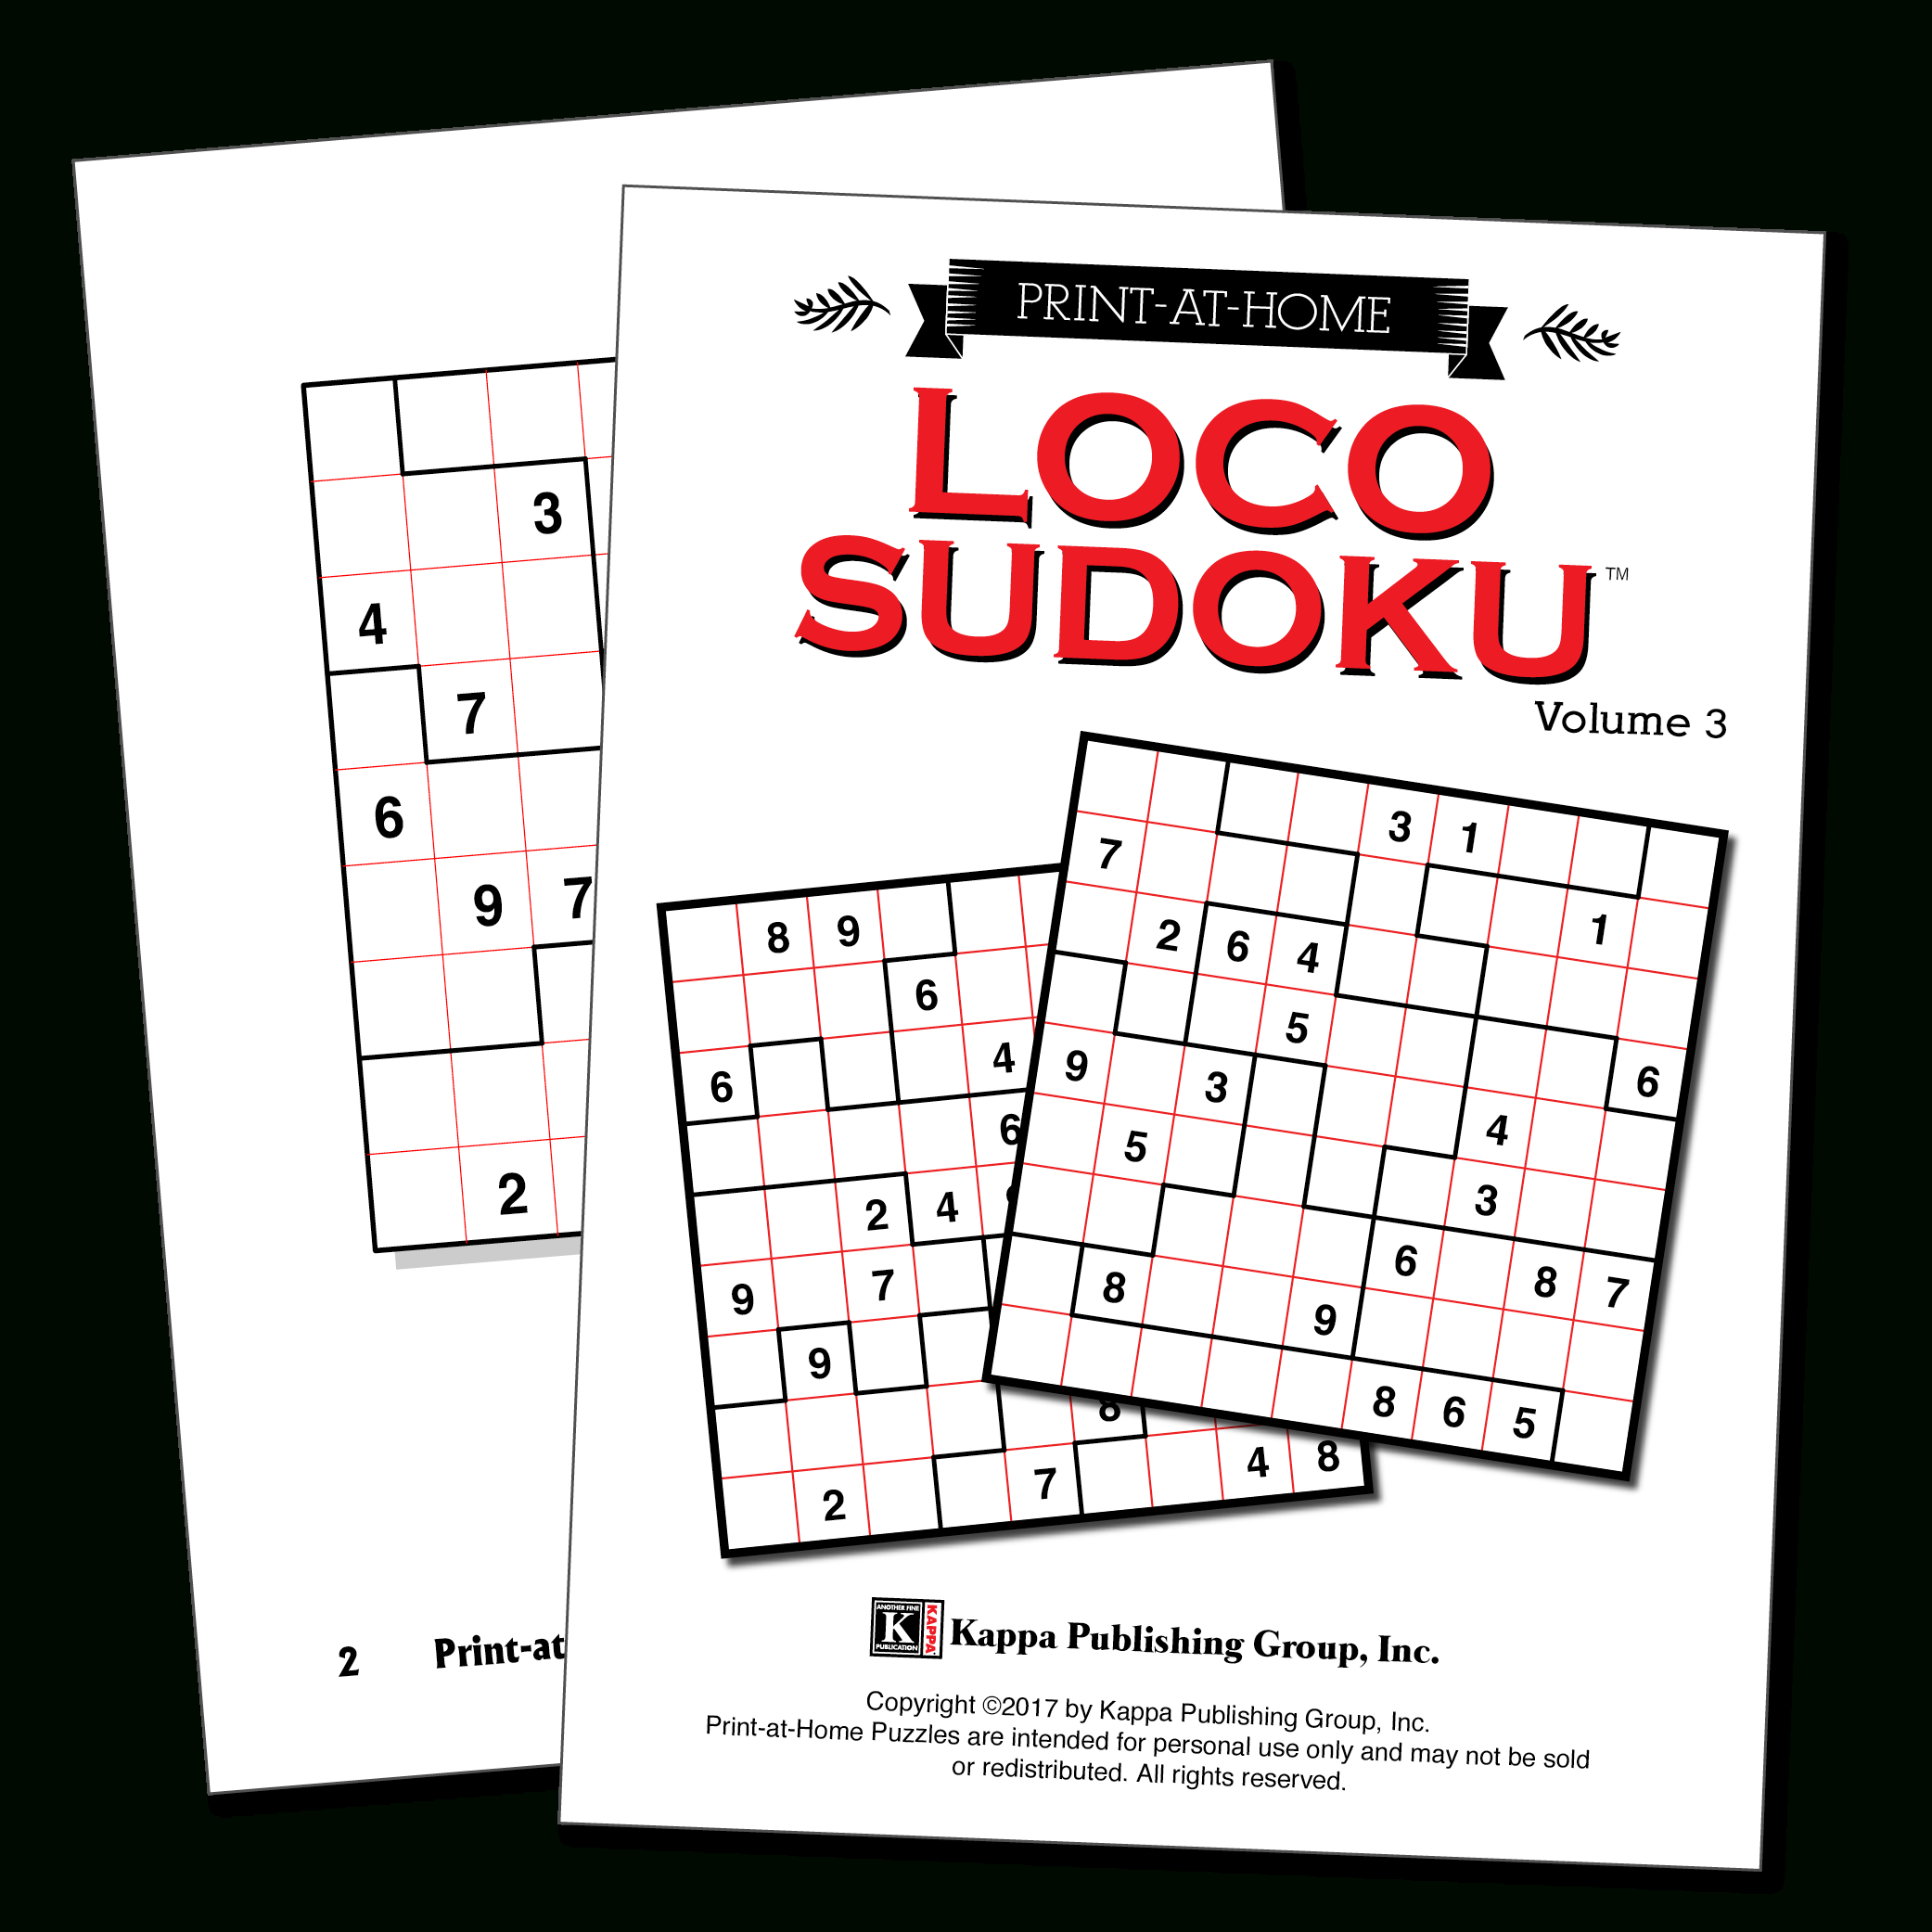 Print-At-Home Loco Sudoku